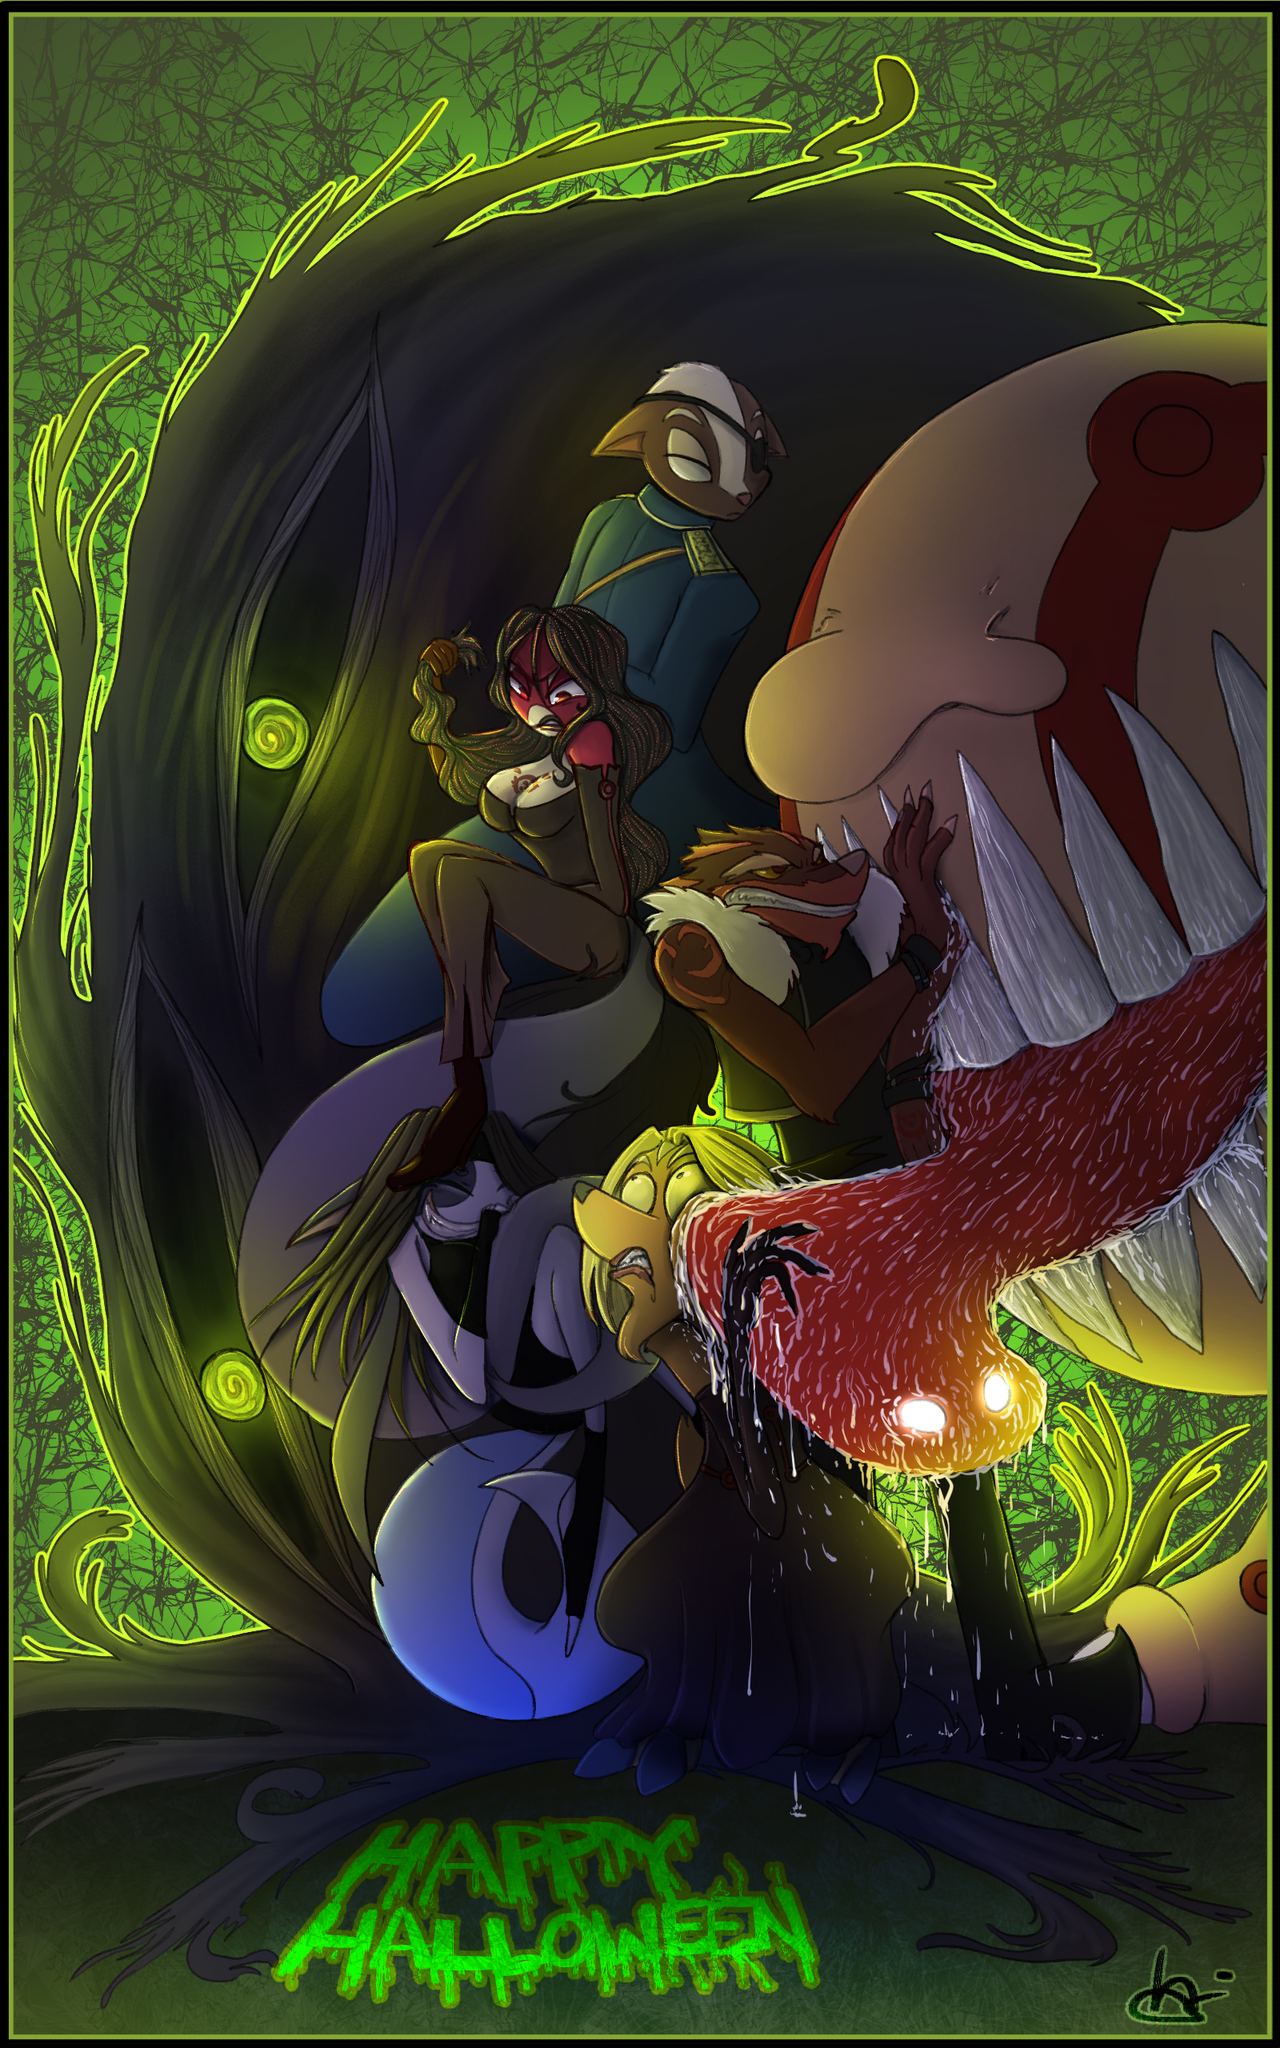 DreamKeepersHalloween.2016 by Ethereal-Harbinger